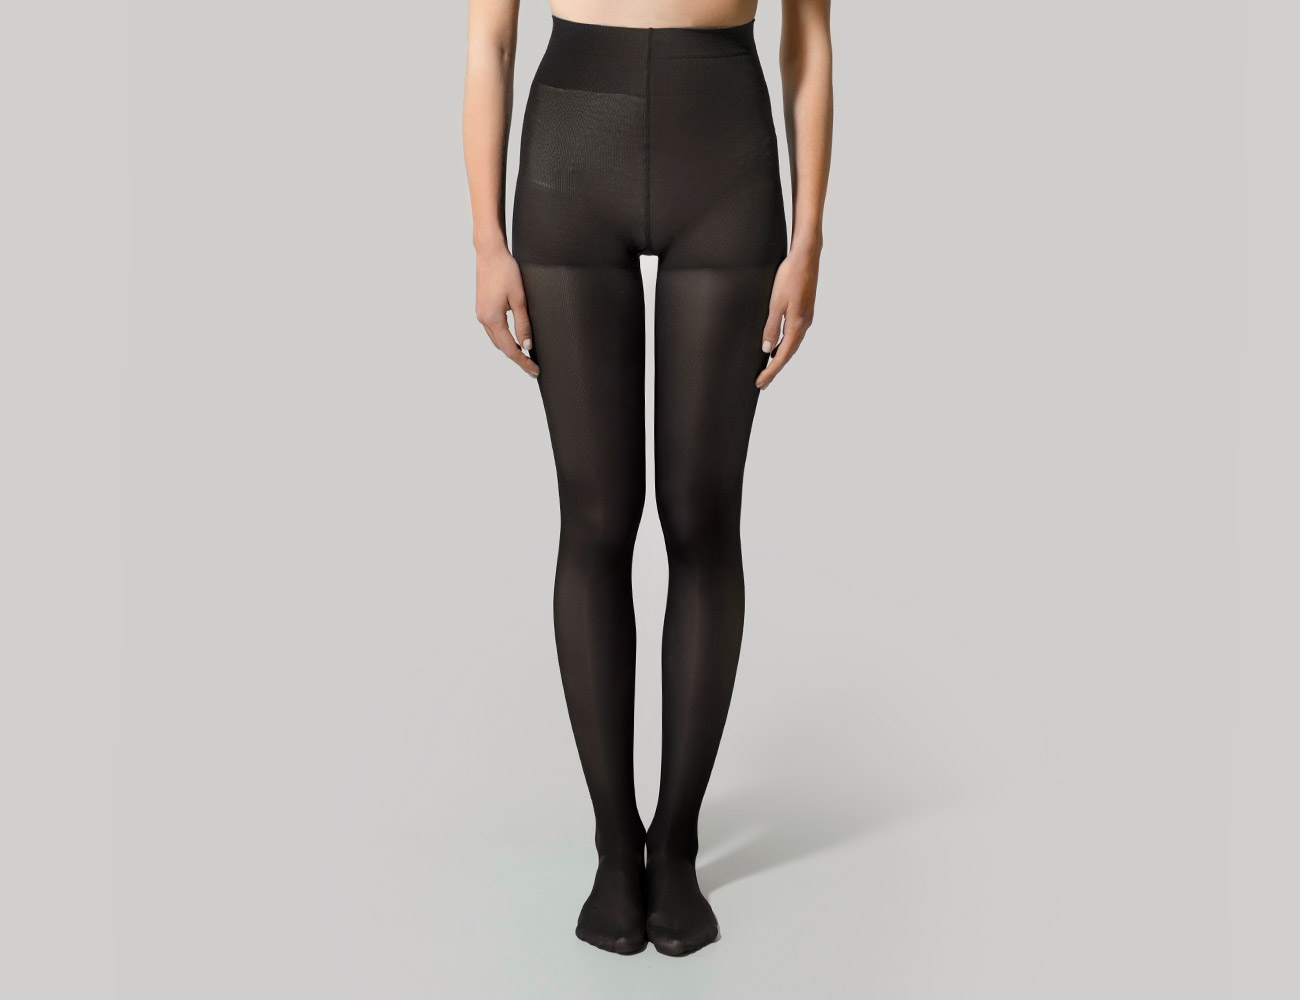 Graduated Compression Tights 140 DEN